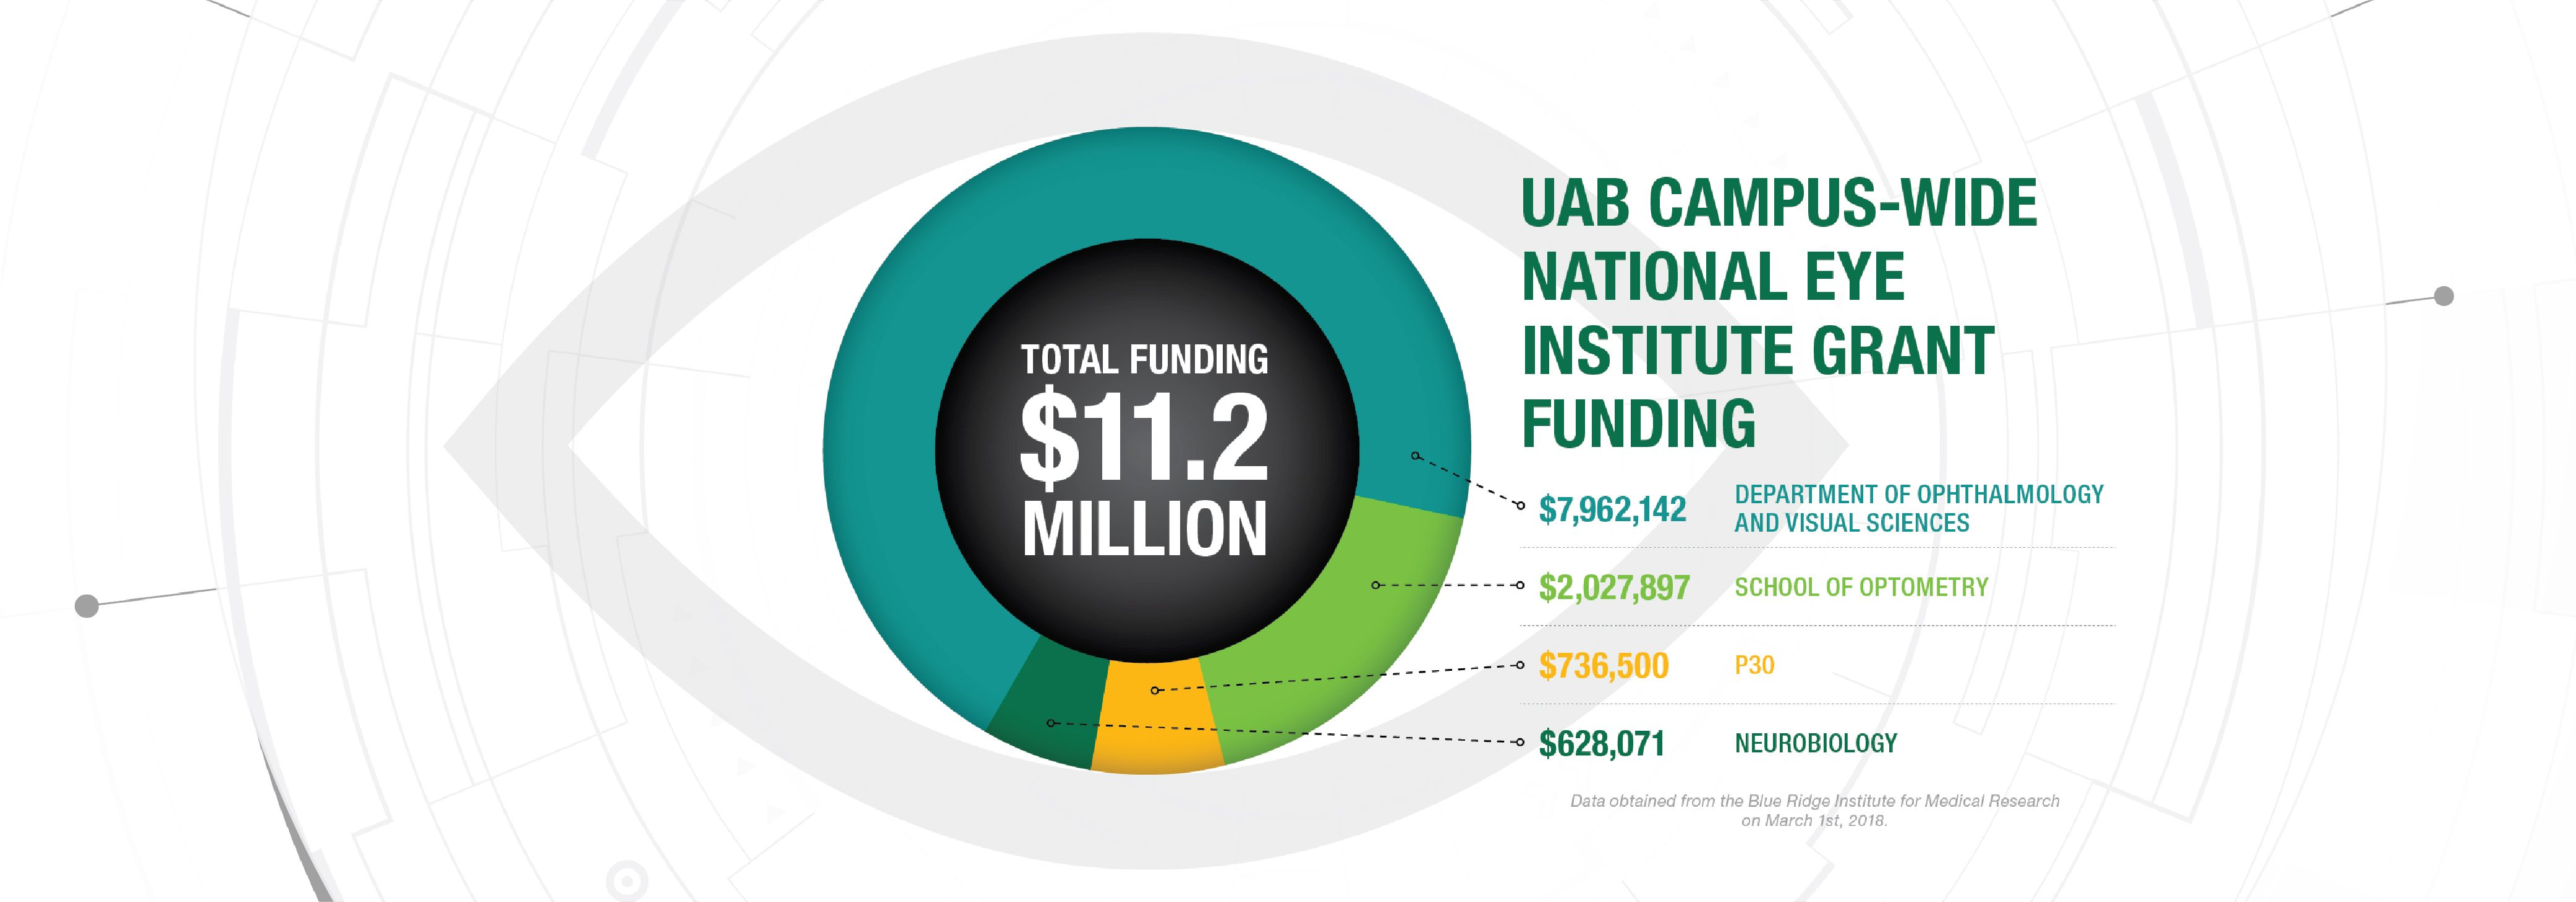 Funding on Campus